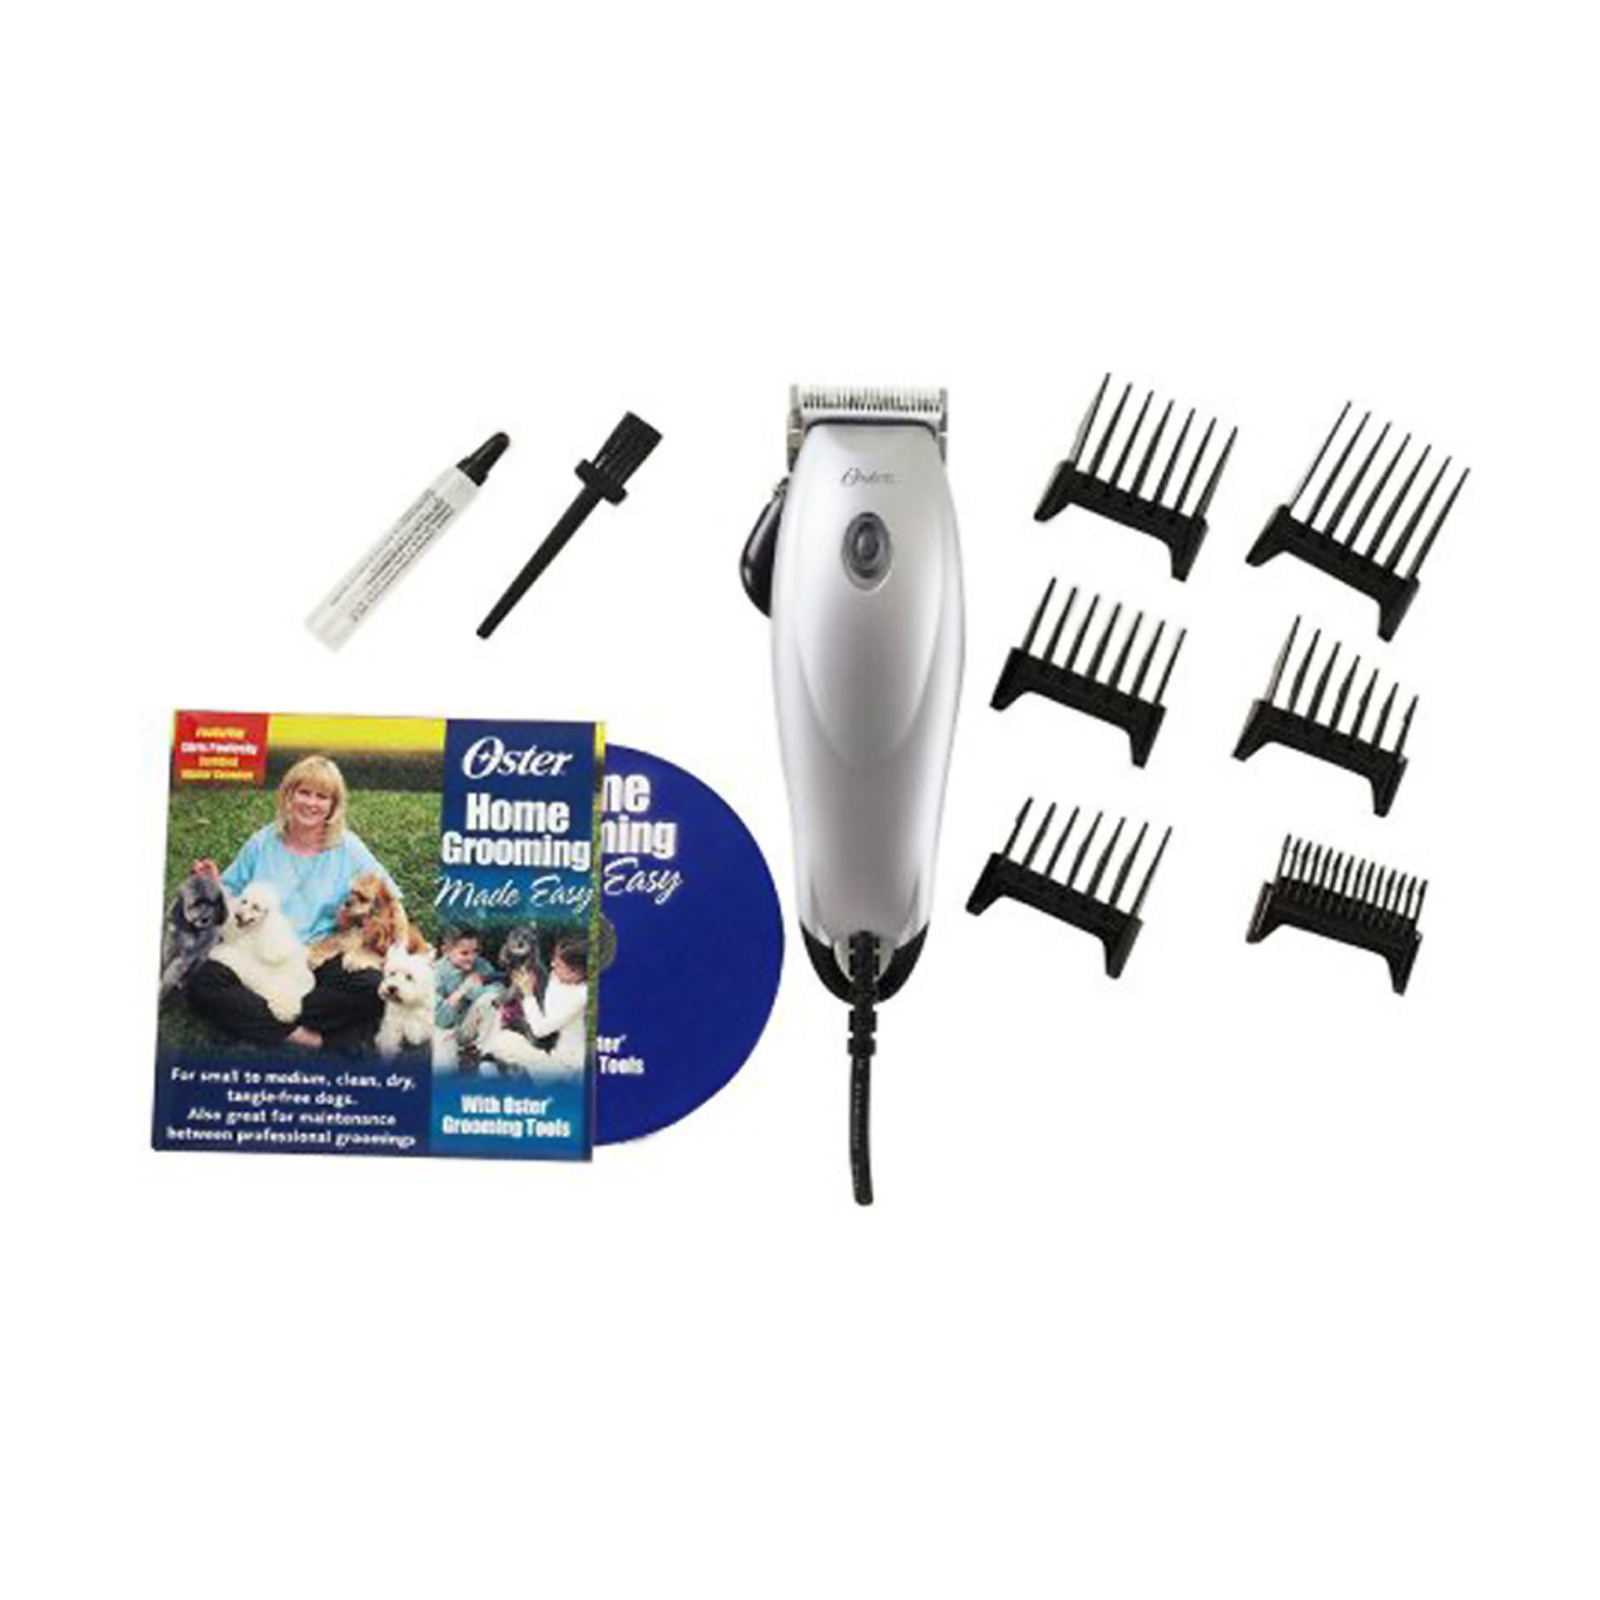 Oster 78950-100 12 Piece Pet Home Grooming Kit